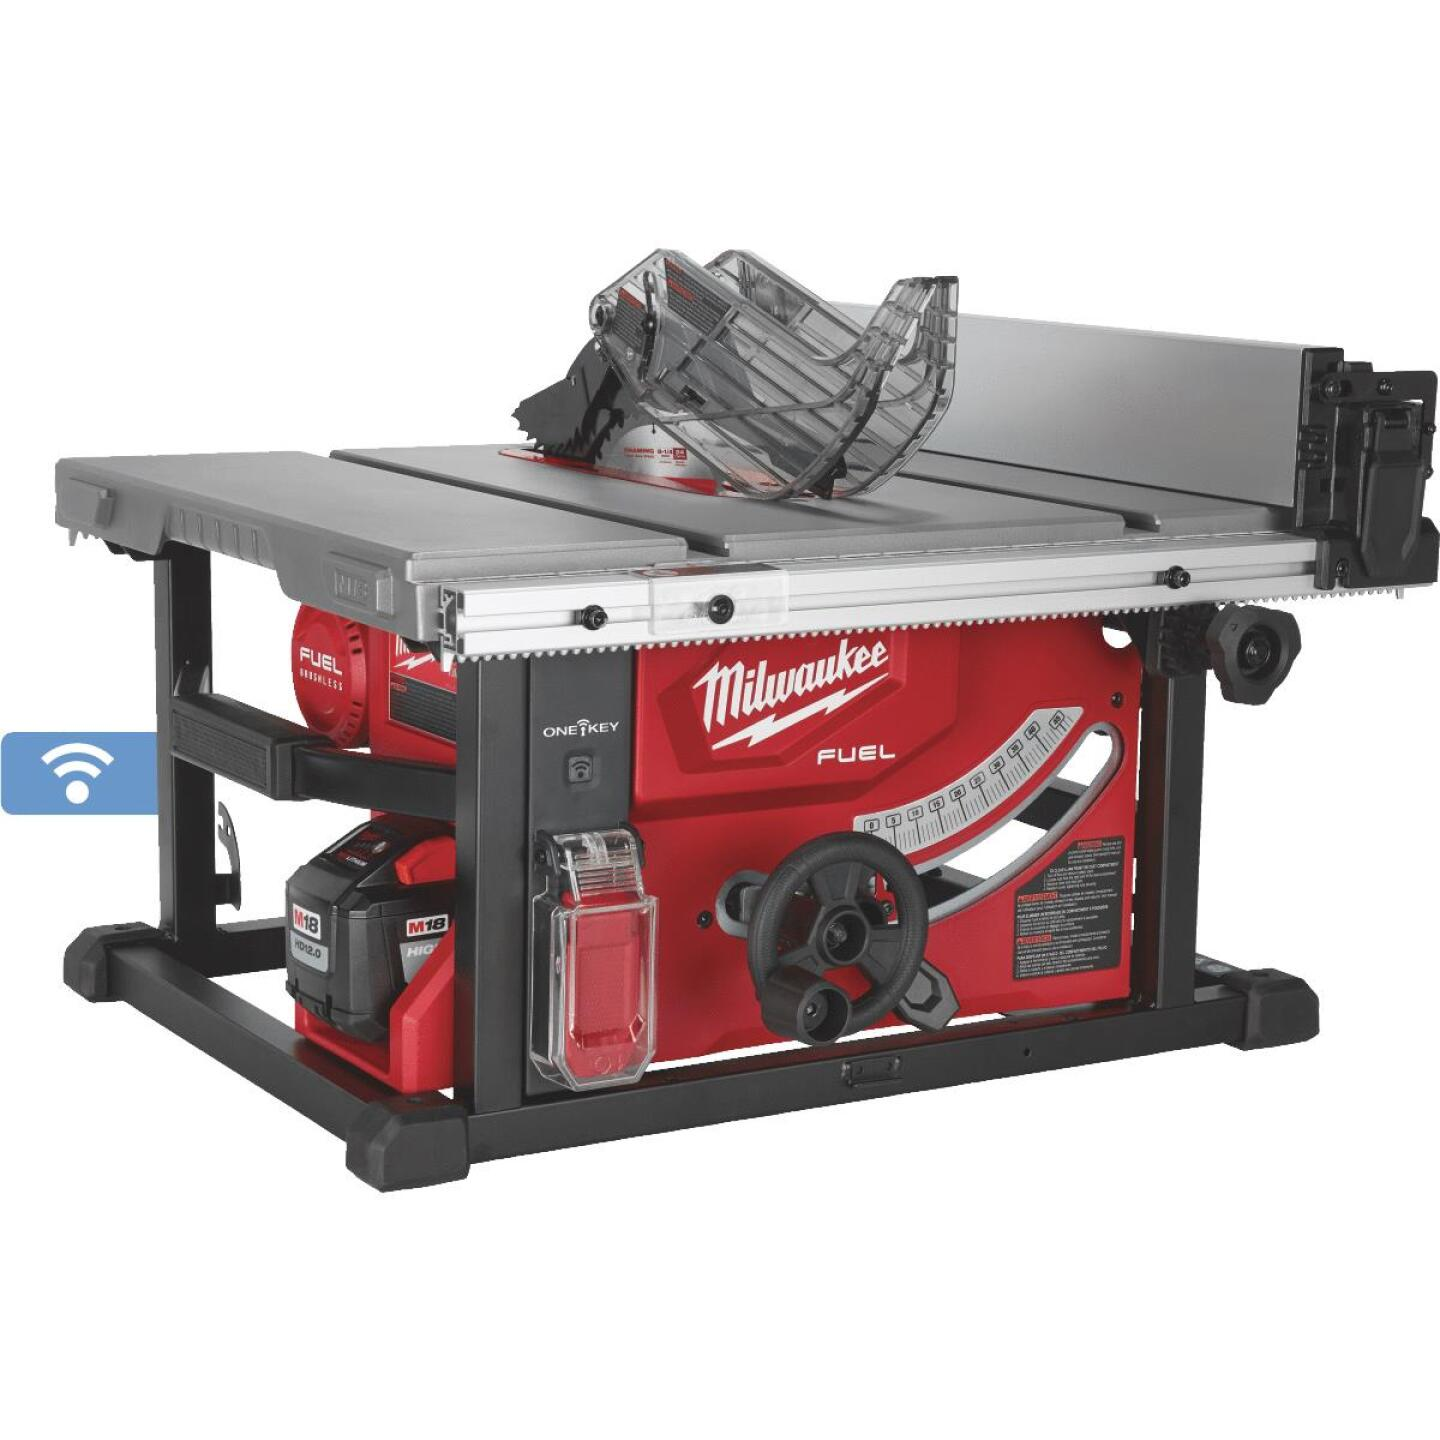 Milwaukee M18 FUEL 18-Volt Lithium-Ion Brushless 8-1/4 In. Cordless Table Saw Kit, ONE-KEY Compatible Image 1